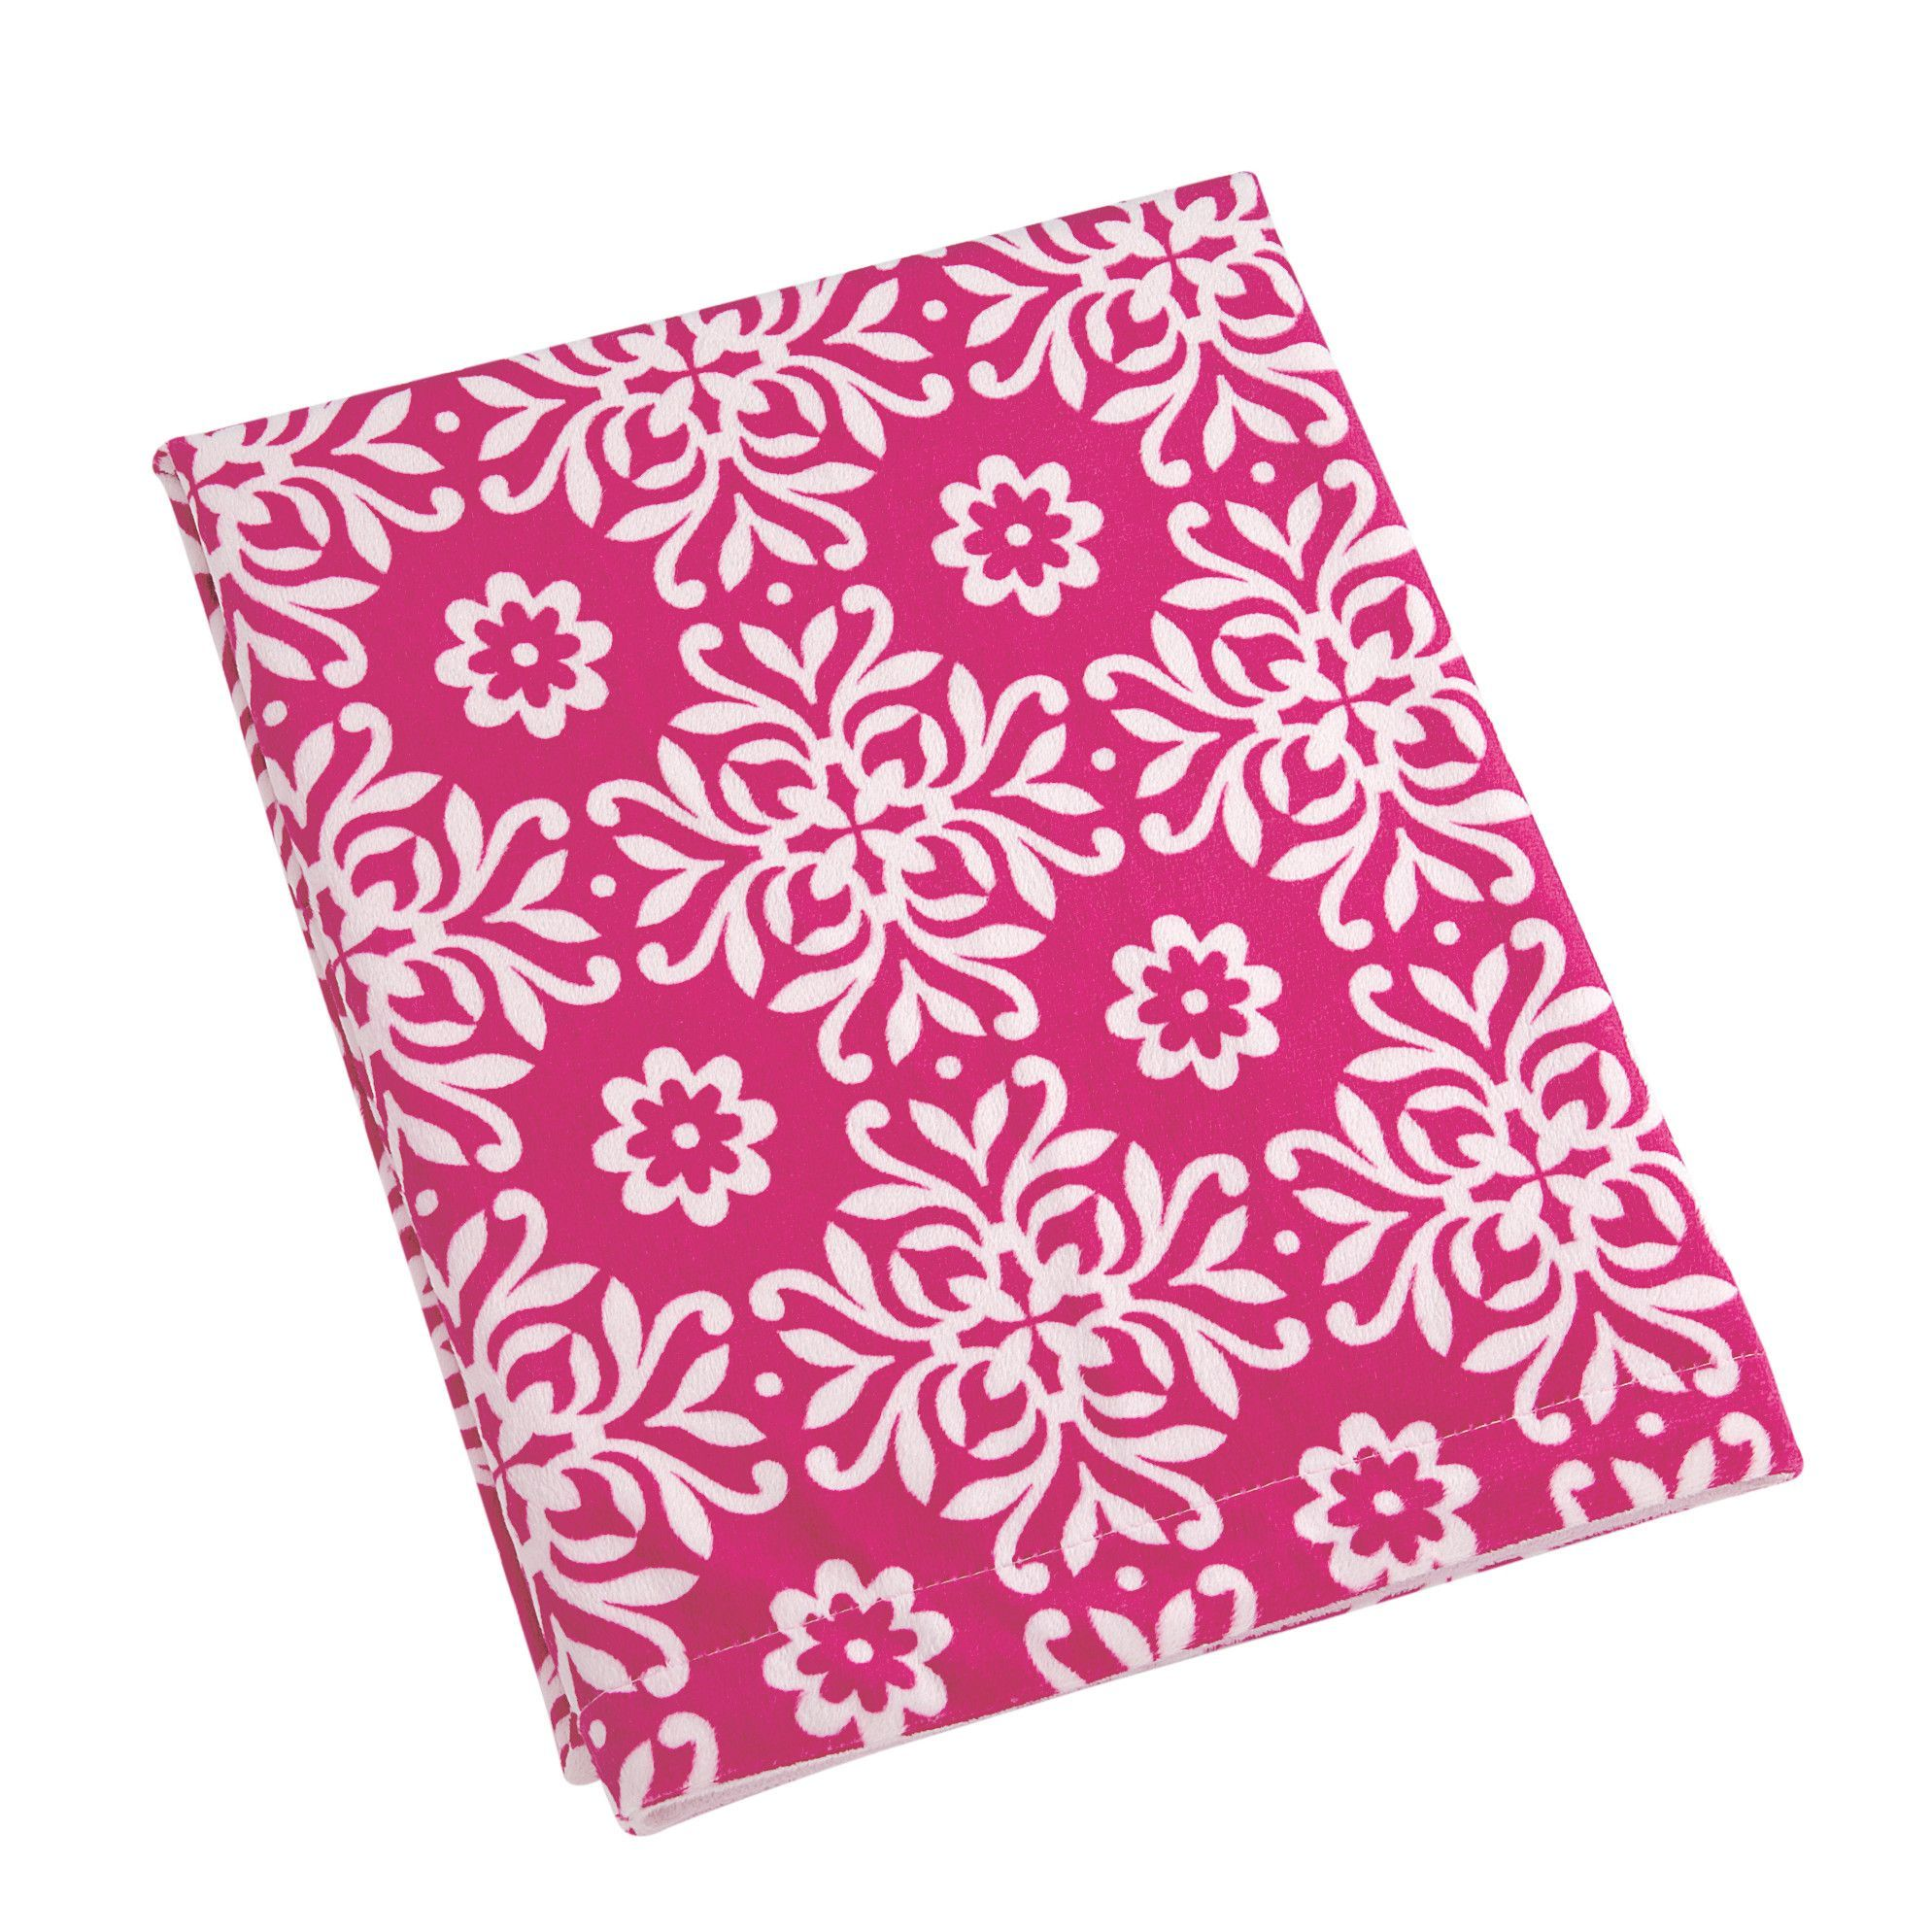 Butterfly bouquet blanket products pinterest blanket and products